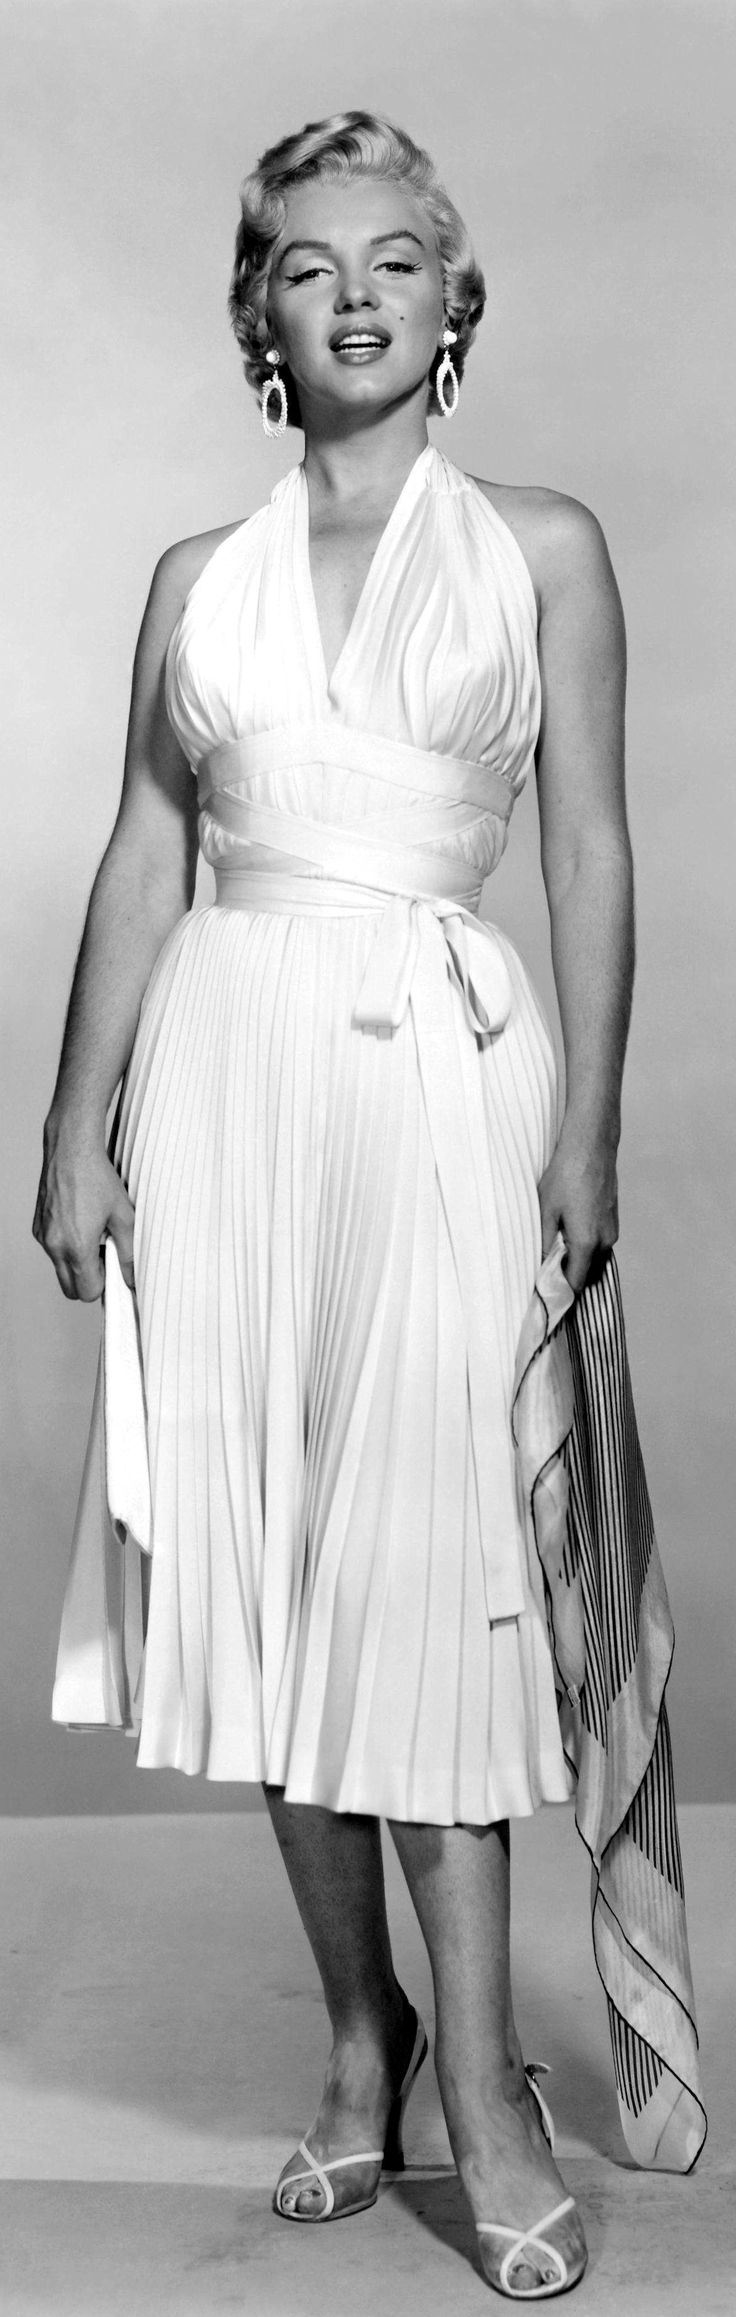 "Marilyn Monroe in William Travilla's iconic white dress for ""The Seven Year Itch"", 1954."